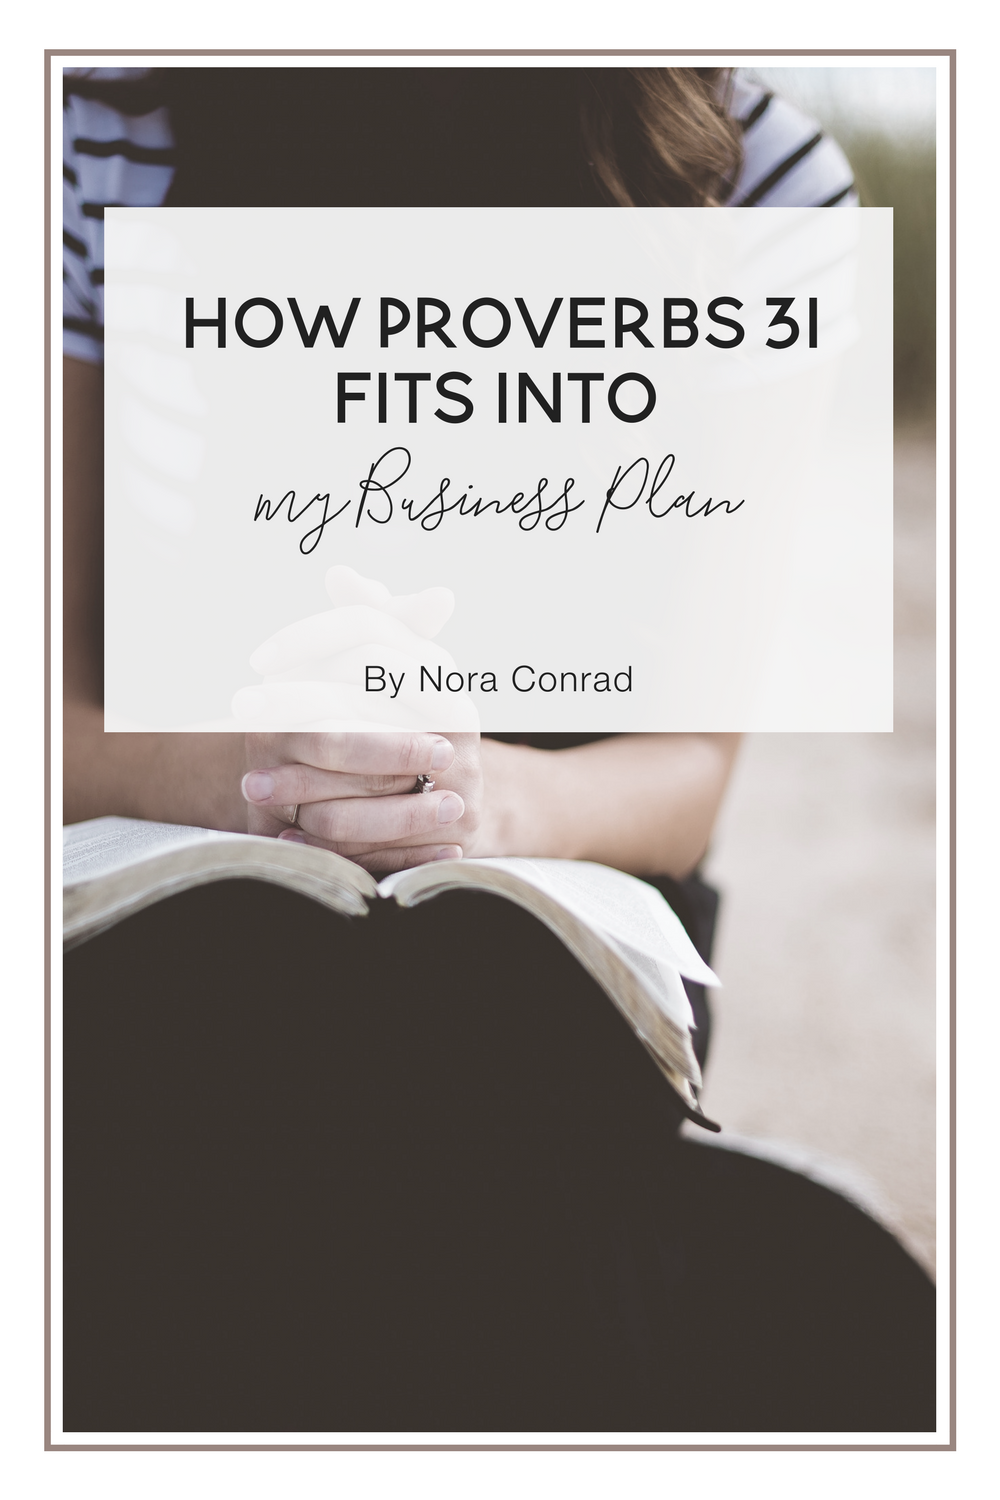 How Proverbs 31 Fits into my Business Plan — Nora Conrad